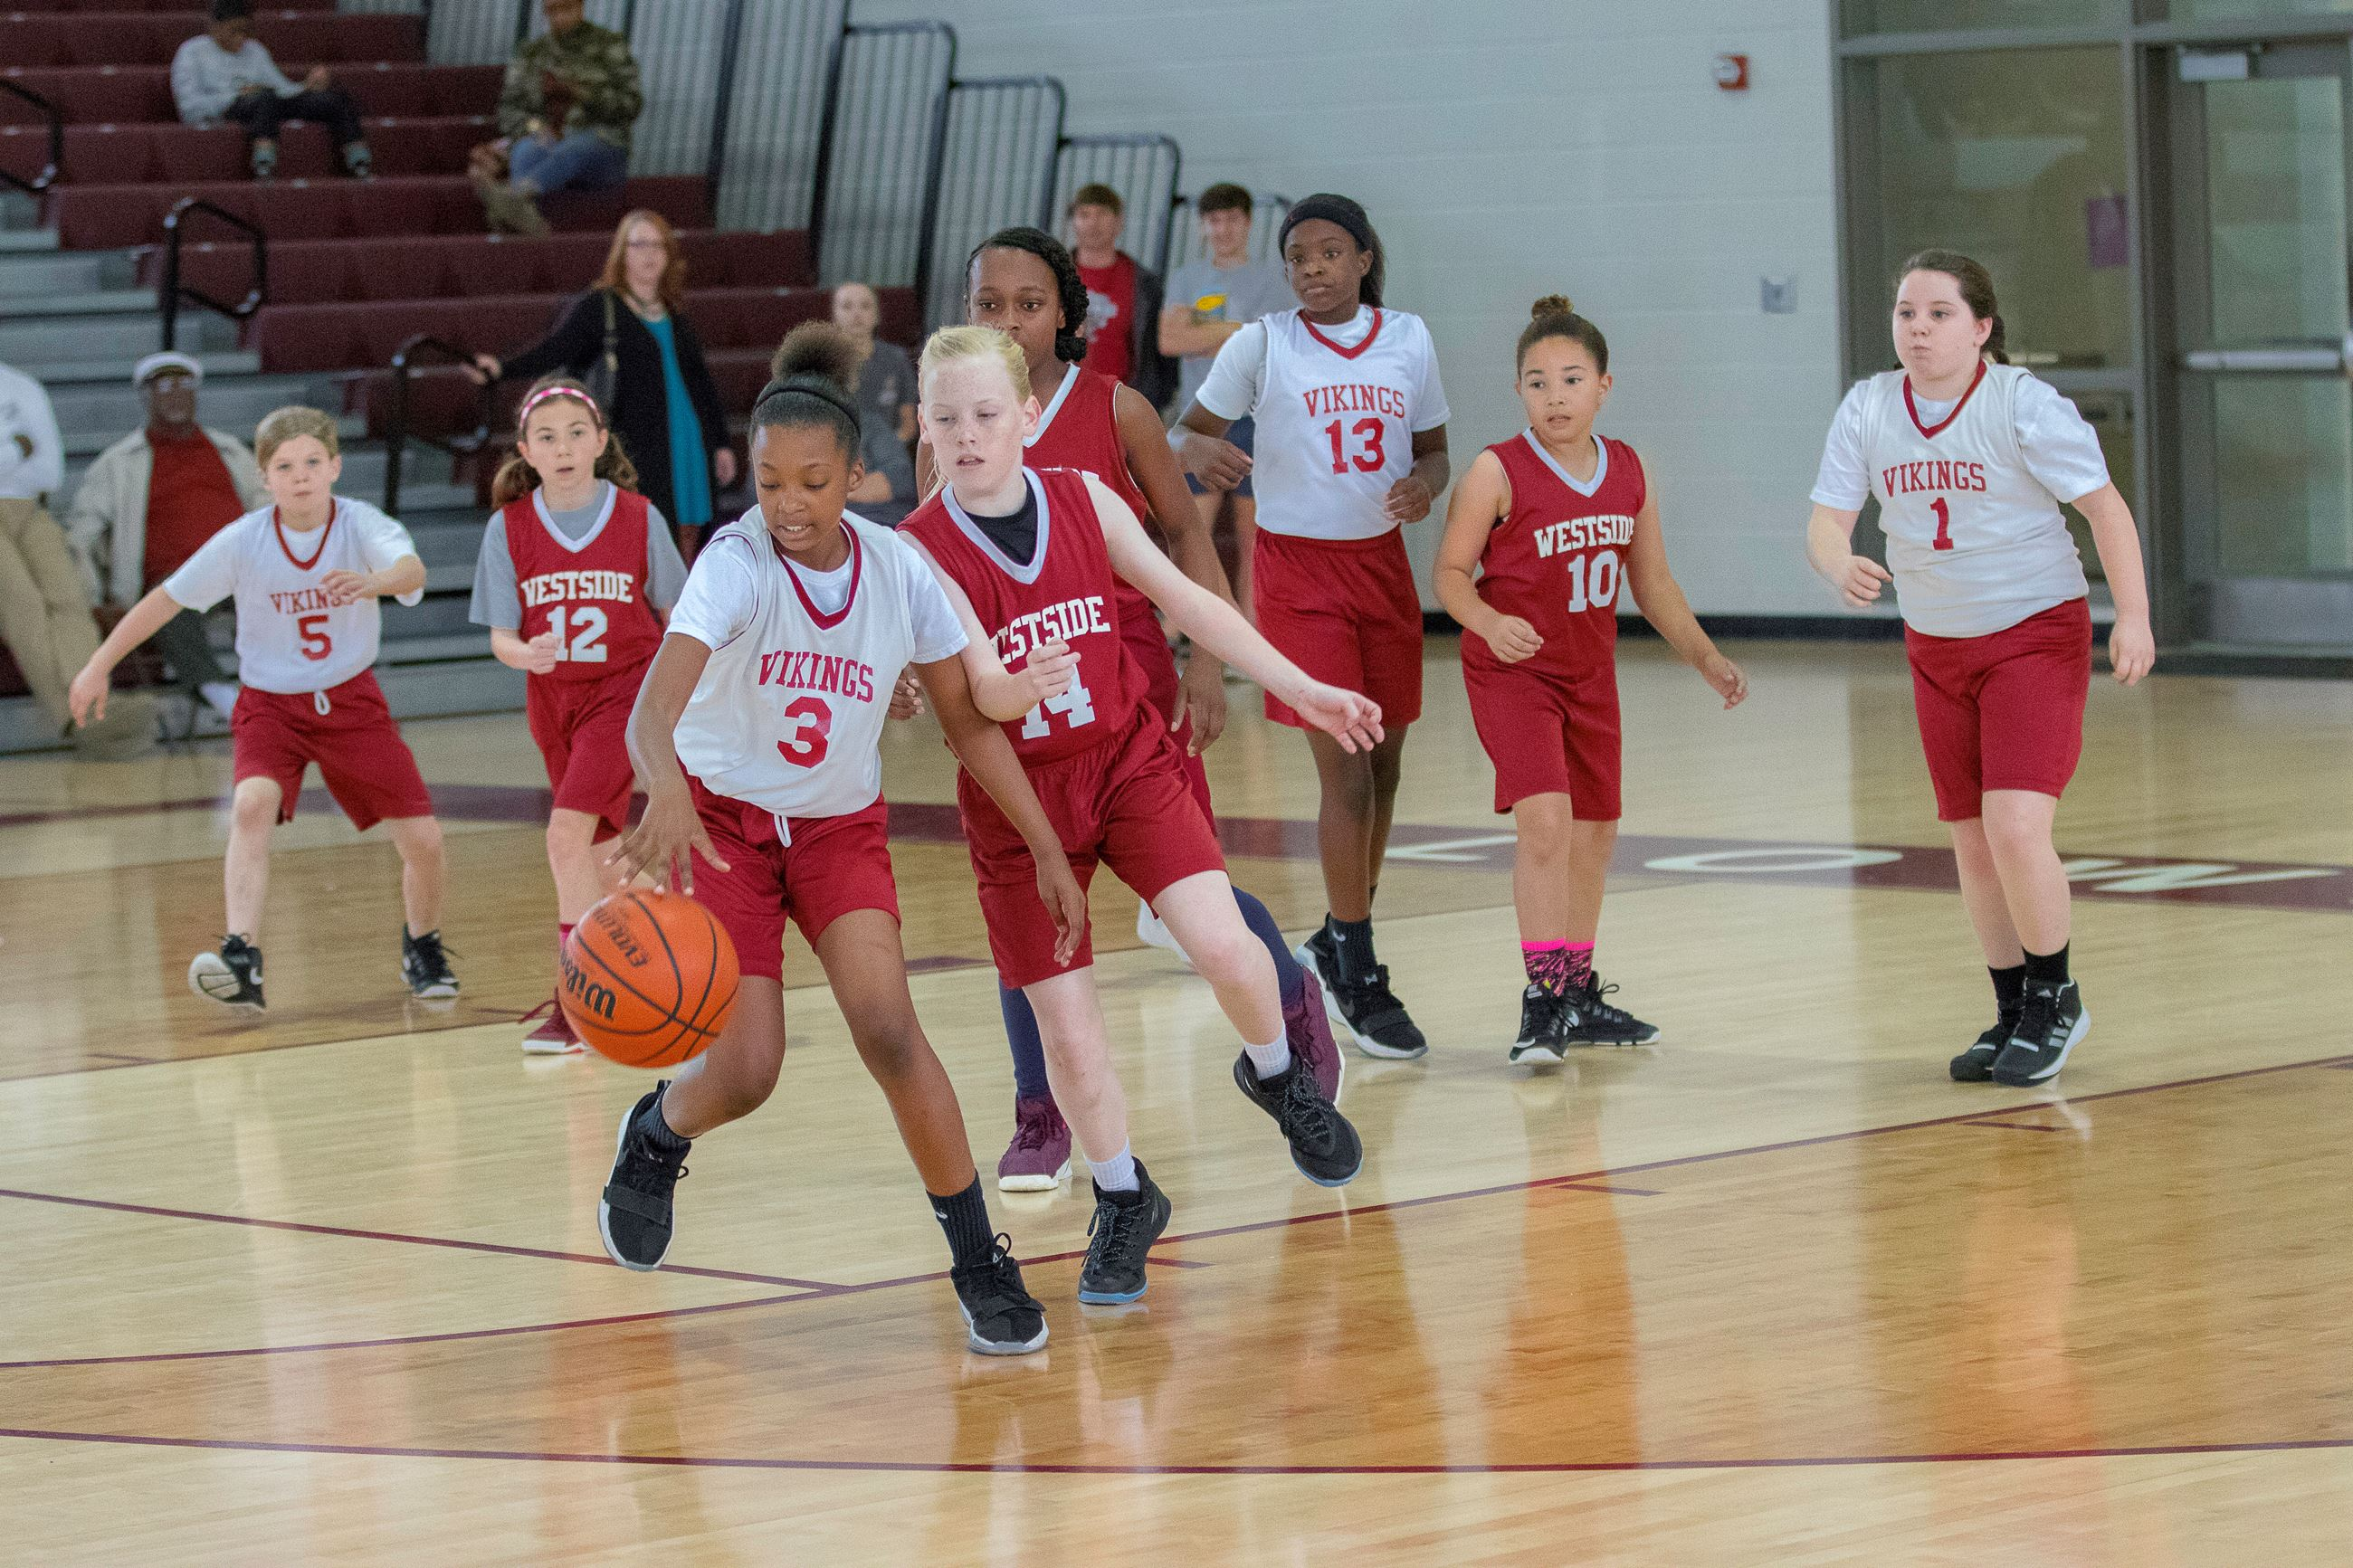 Image of girls playing basketball.